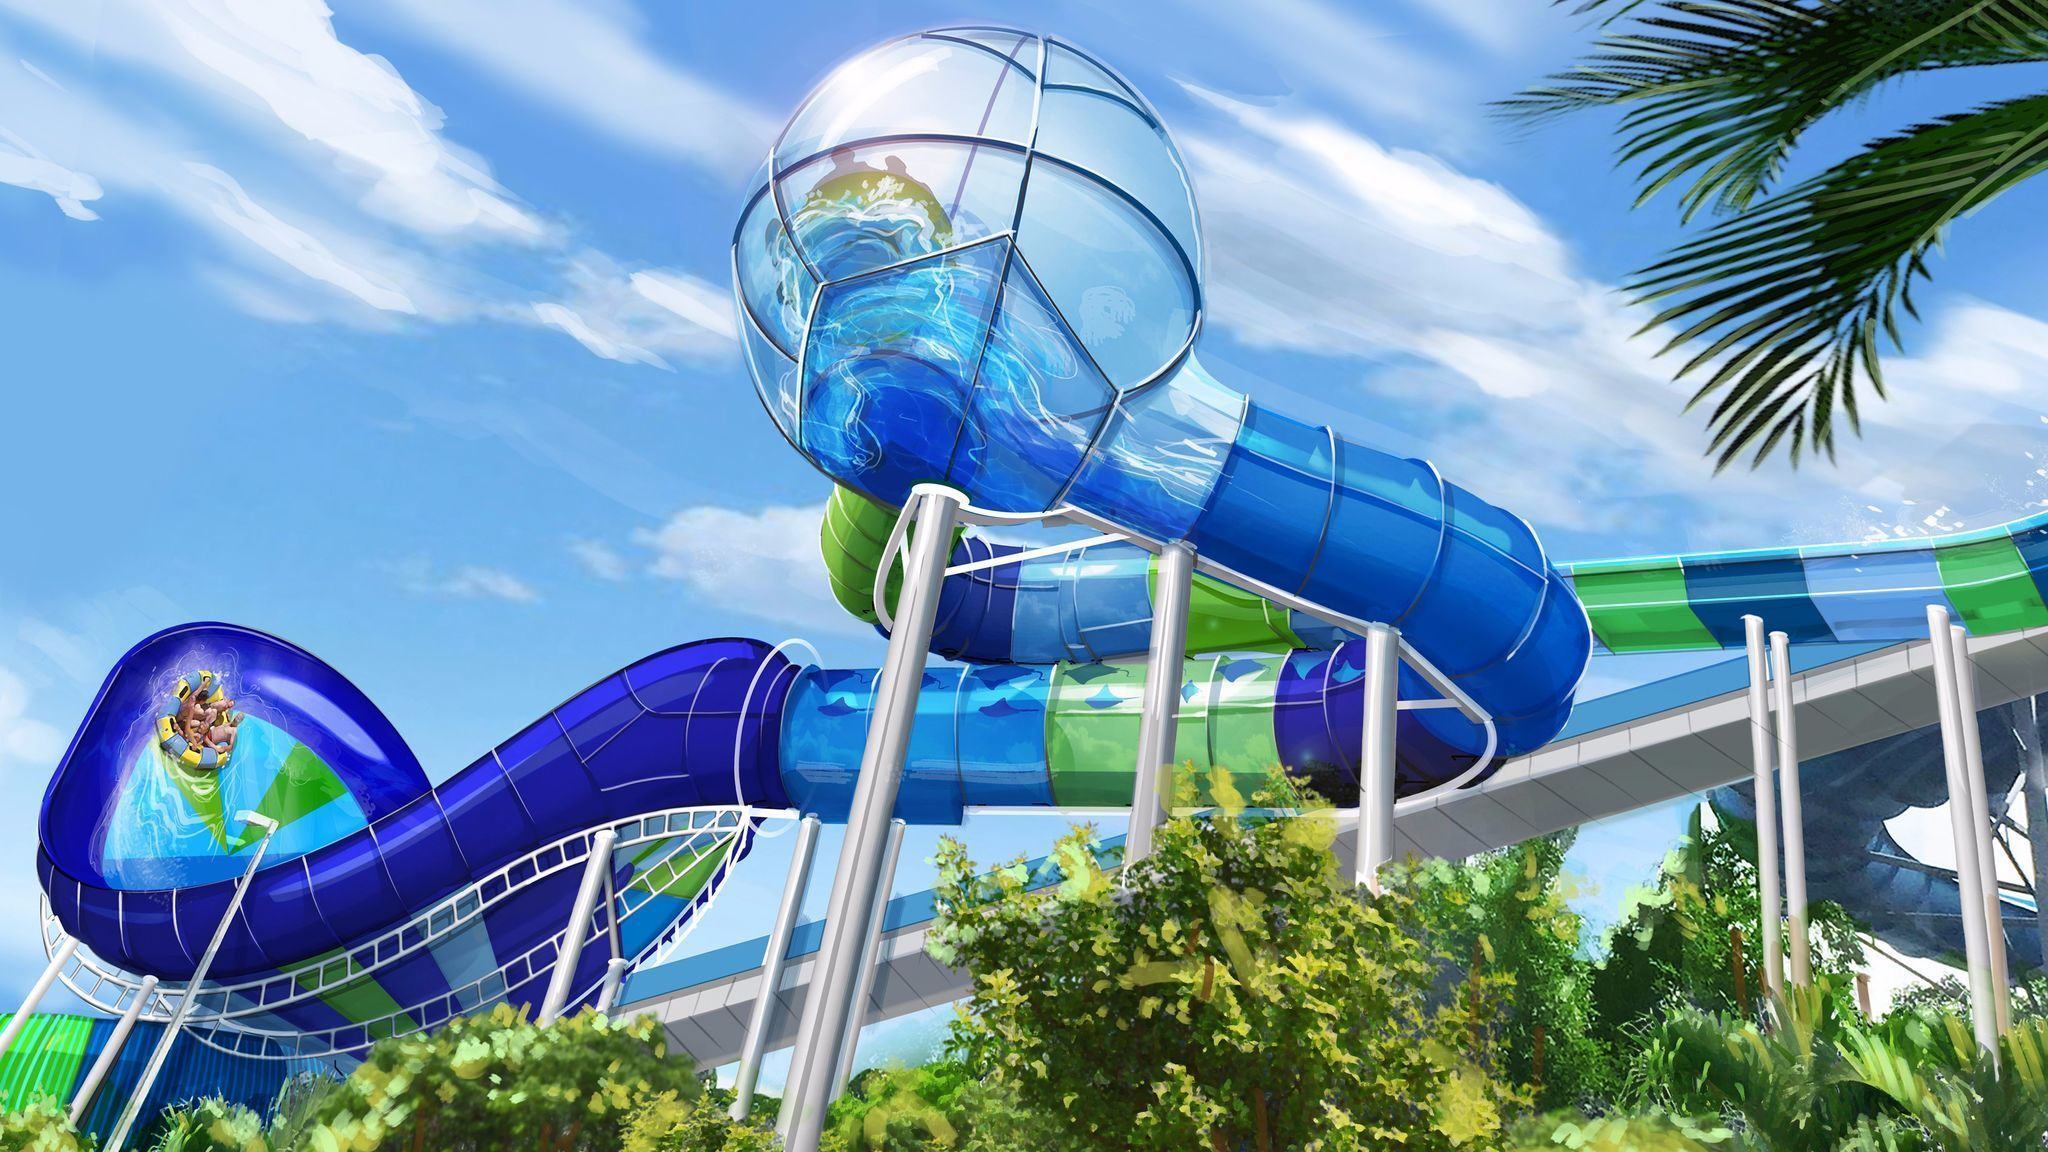 Aquatica New Ray Rush Water Slide Coming Up Orlando